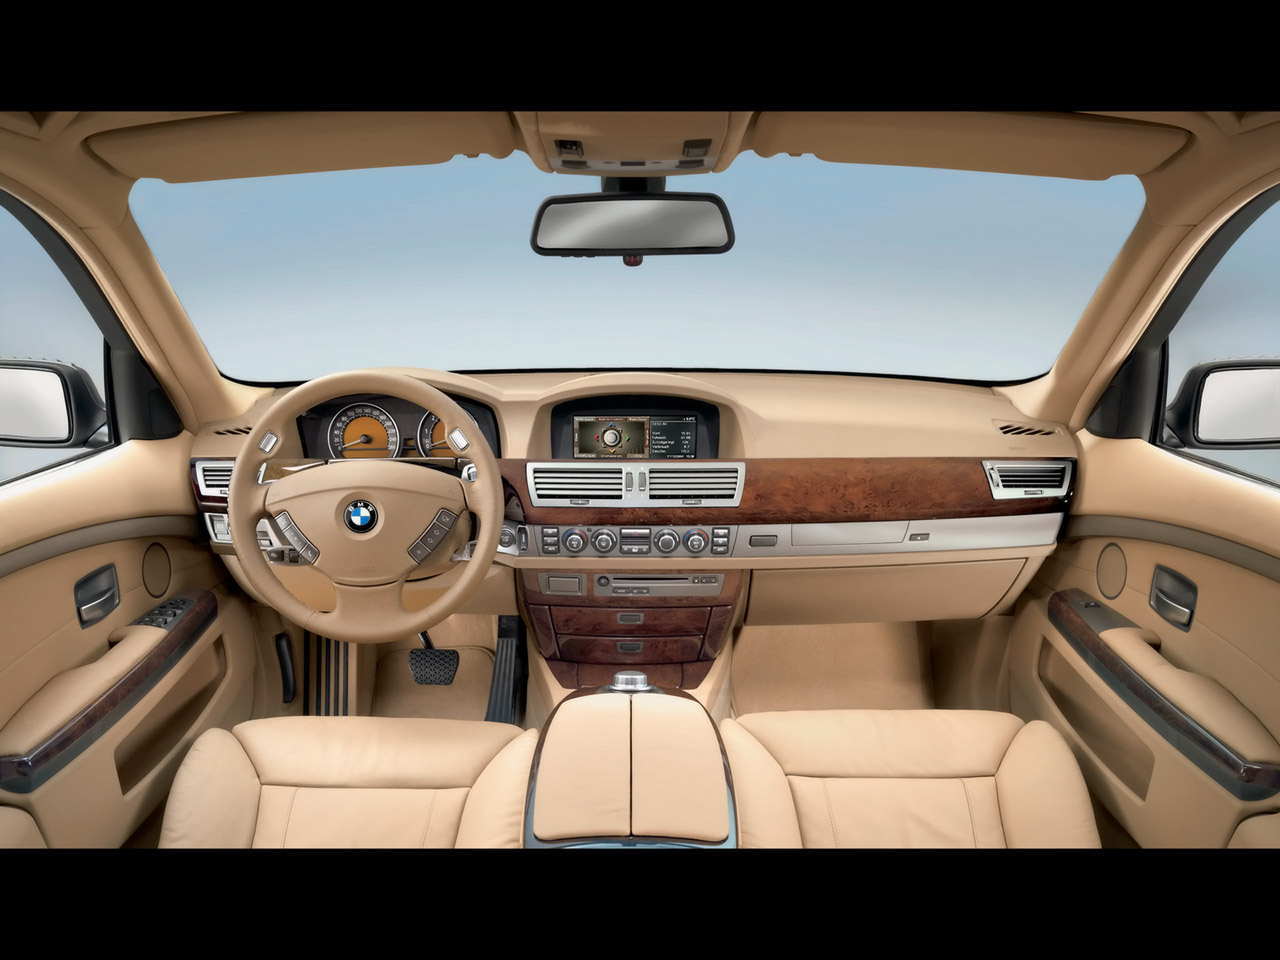 bmw cars interior cars wallpapers and pictures car images car pics carpicture. Black Bedroom Furniture Sets. Home Design Ideas